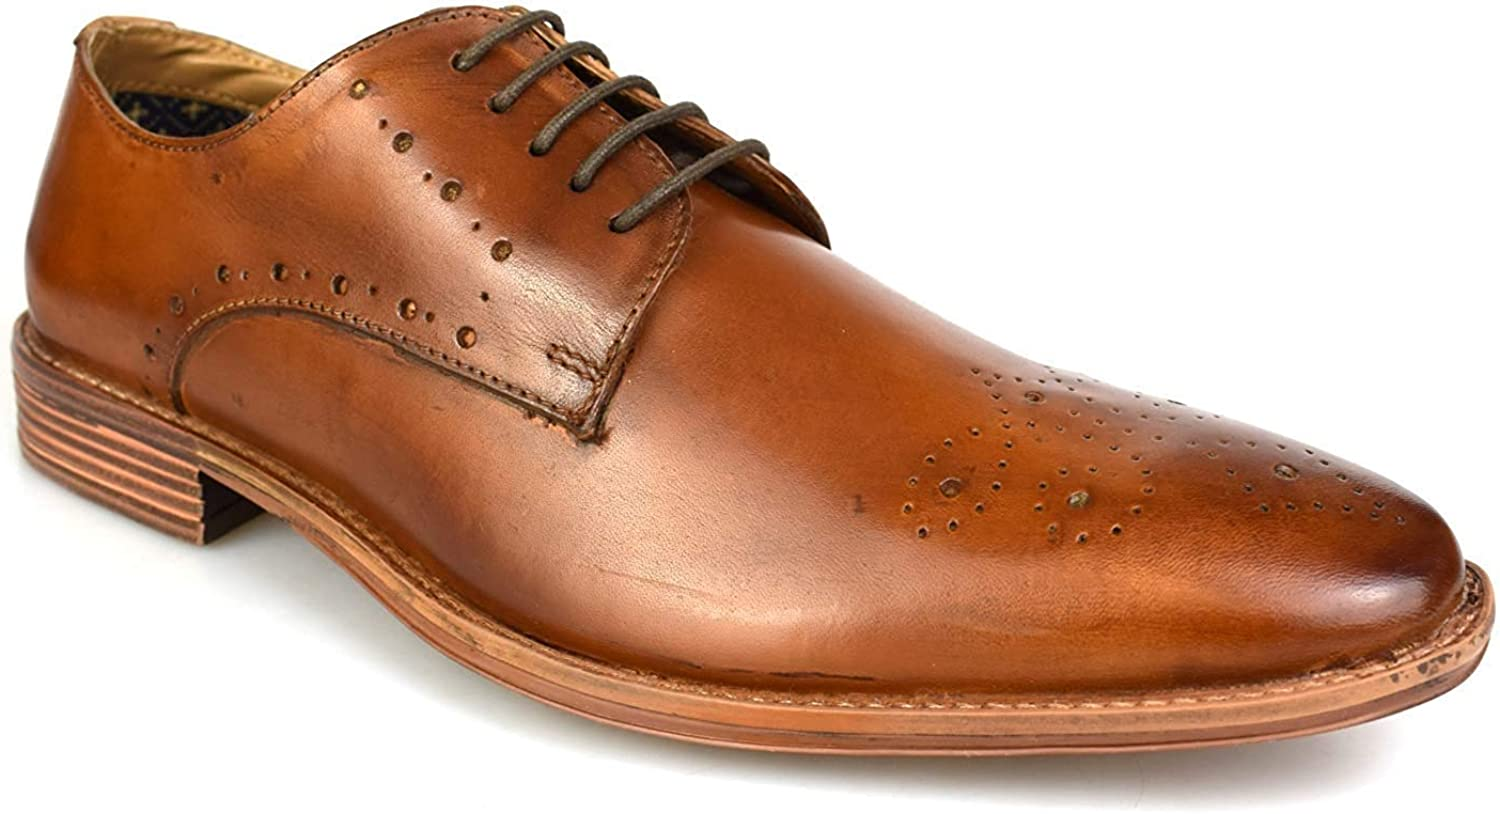 Catesby Men's Mark Brogue Lace-Up Leather shoes 1830T